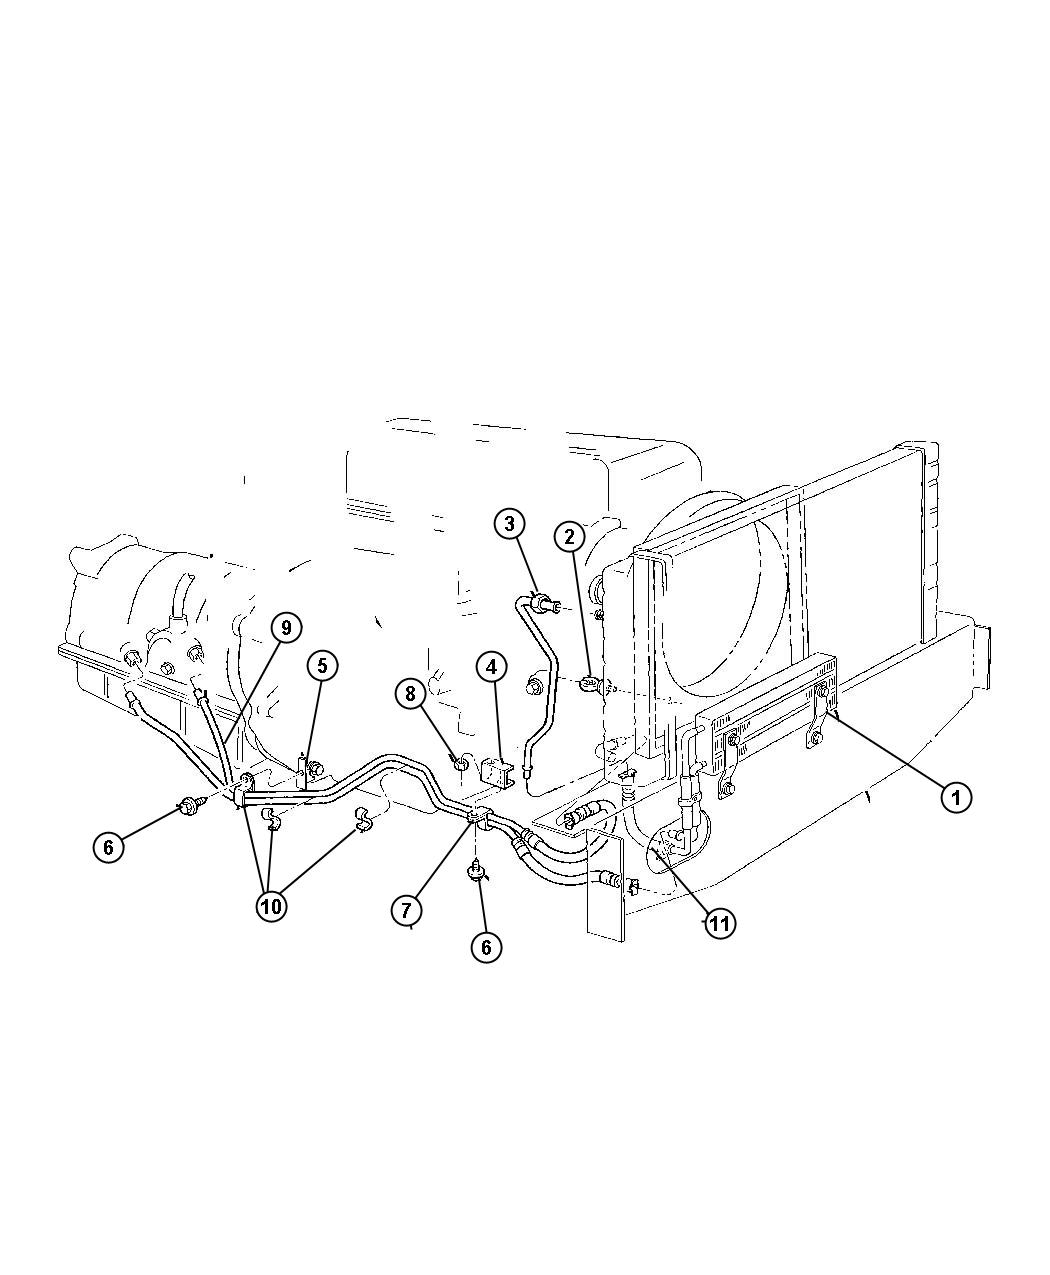 Jeep Cherokee Used For Tube And Hose Oil Cooler